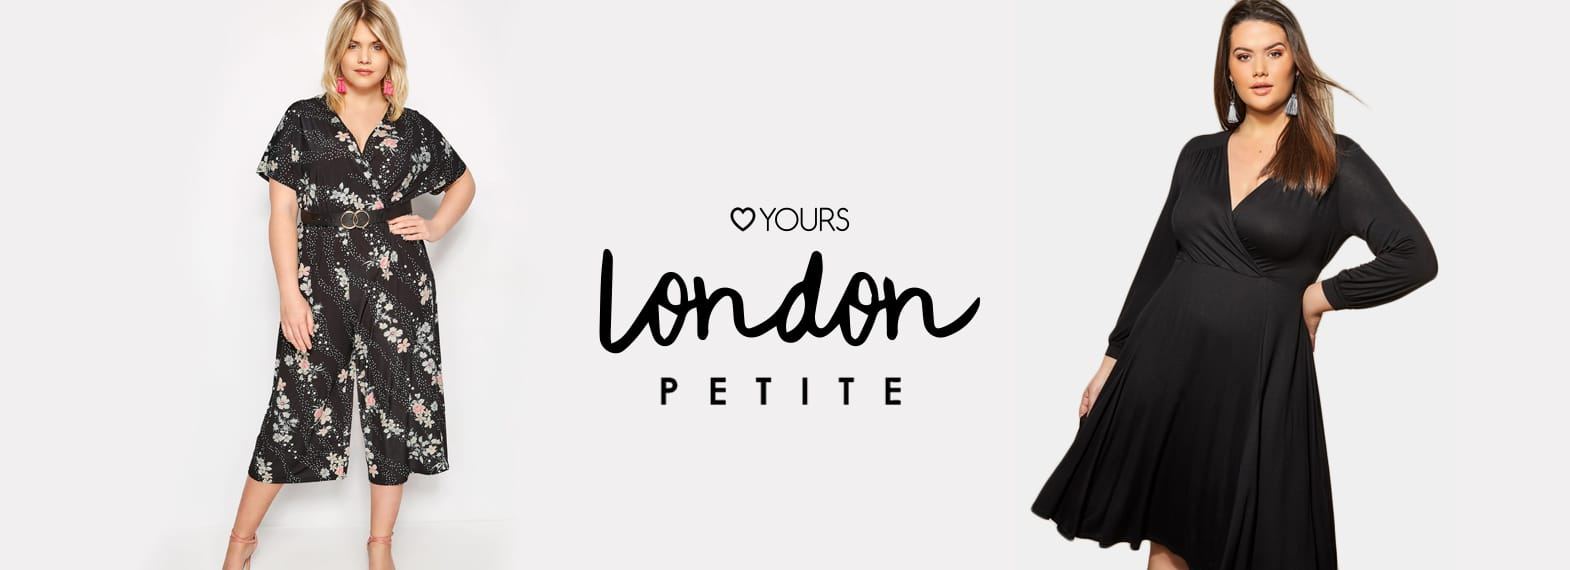 Yours London Petite